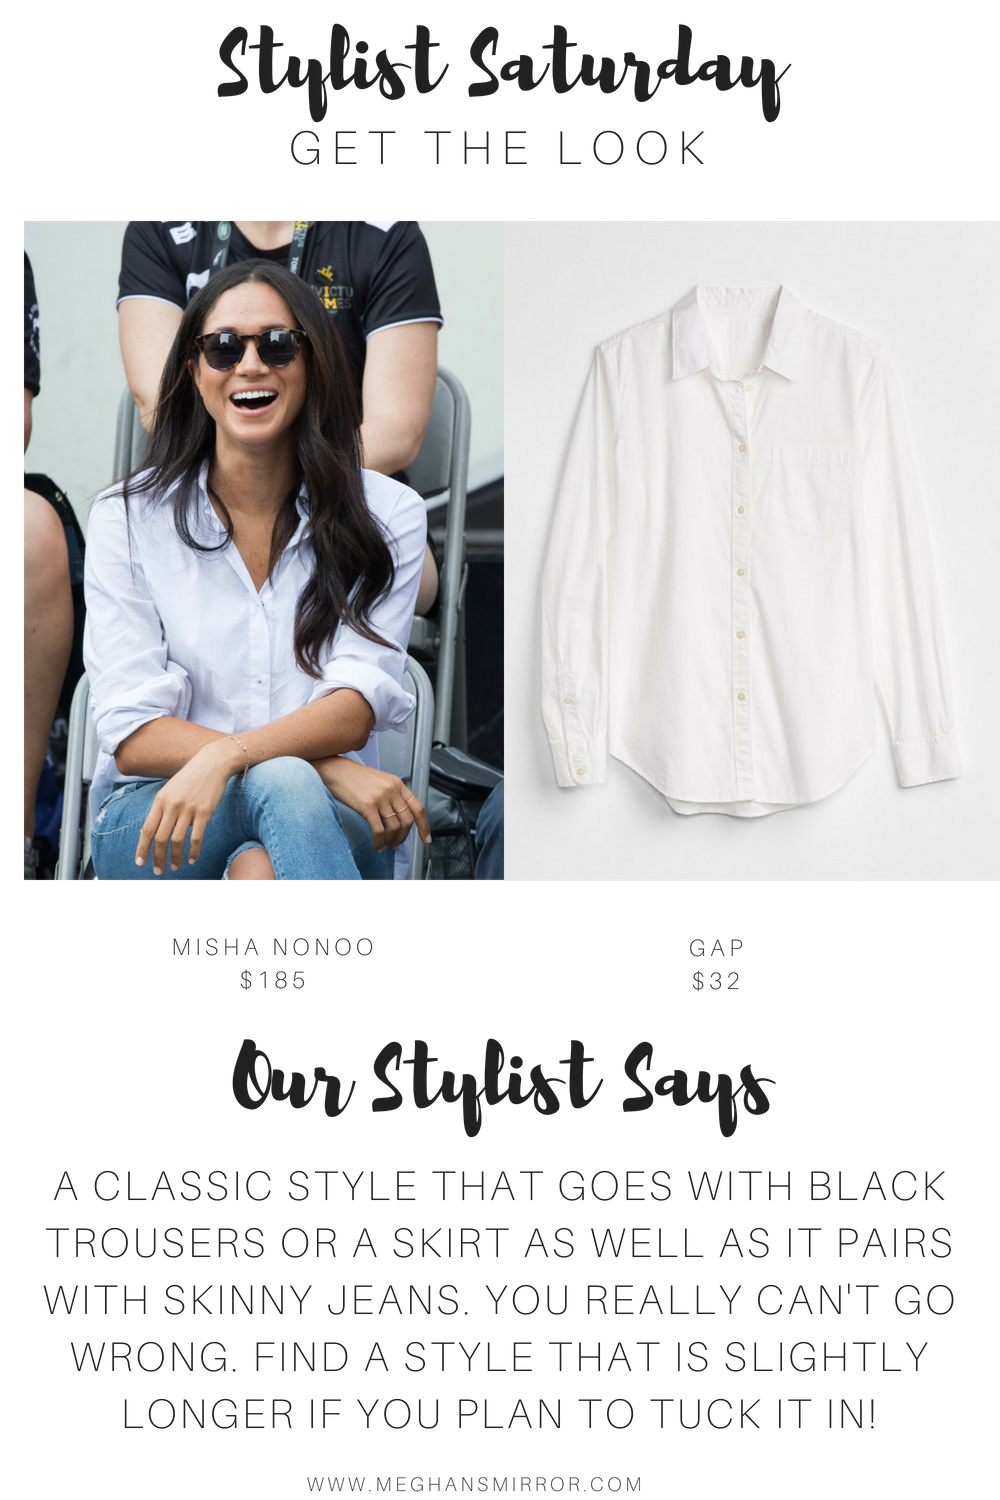 Meghan Markle Husband Shirt Look Alikes